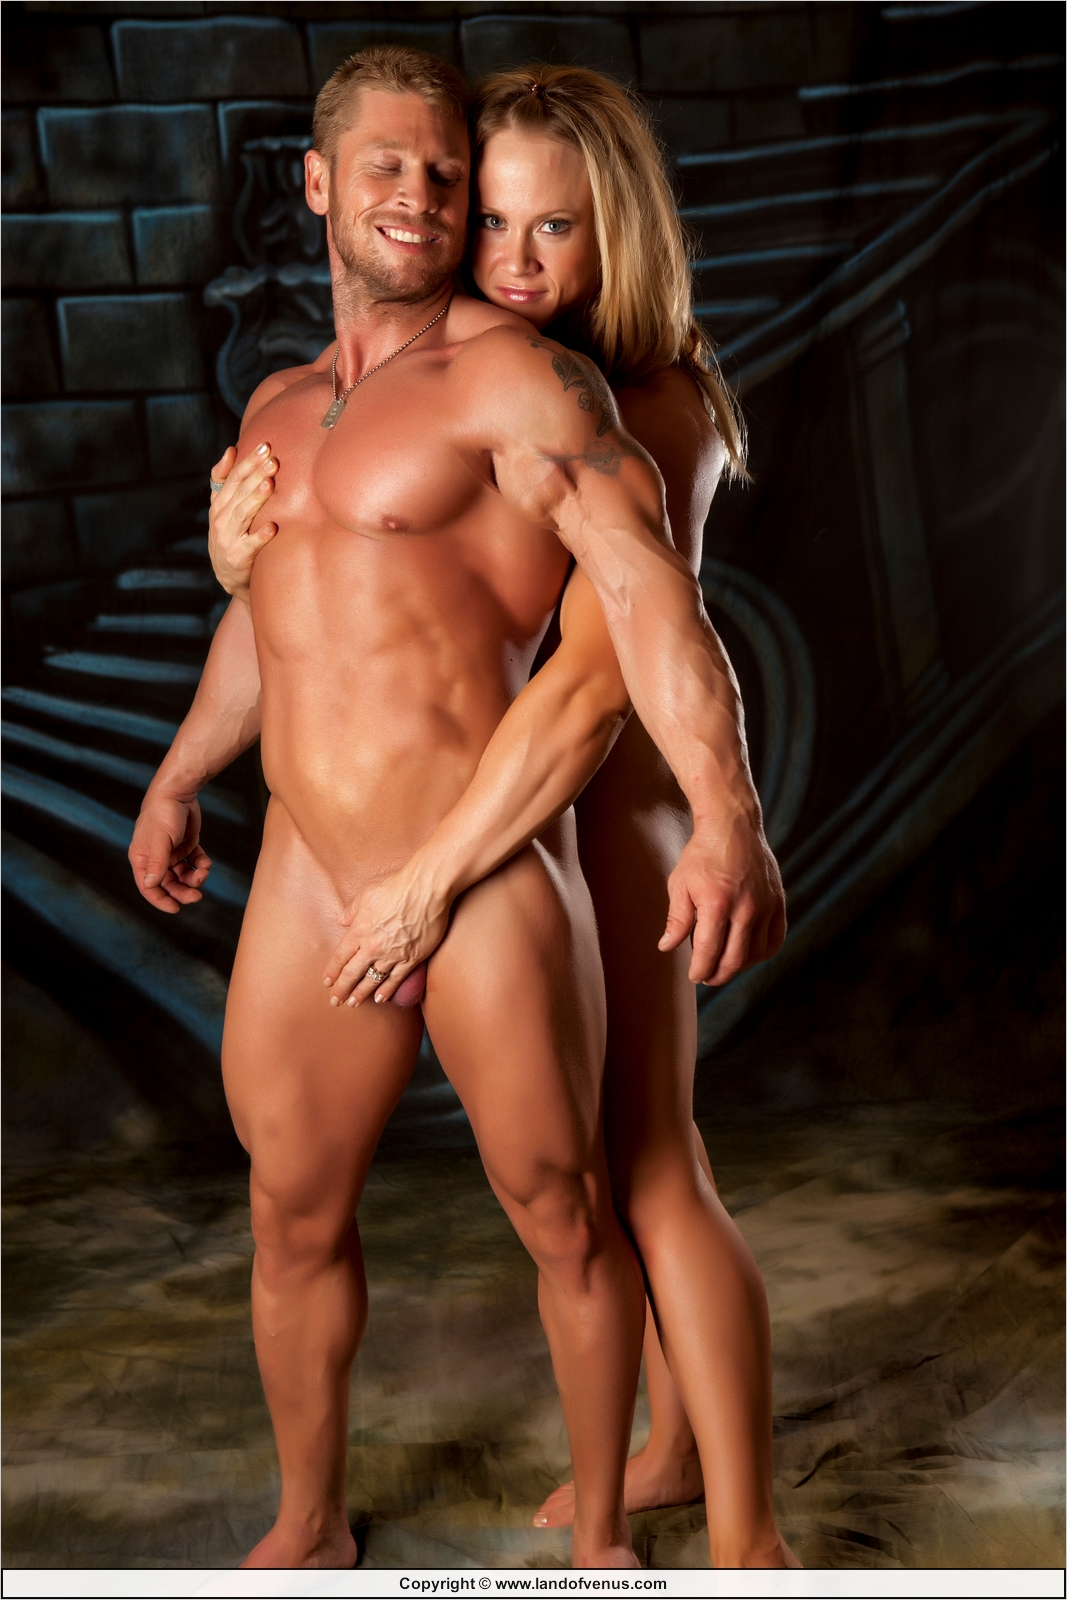 Female muscle free porn